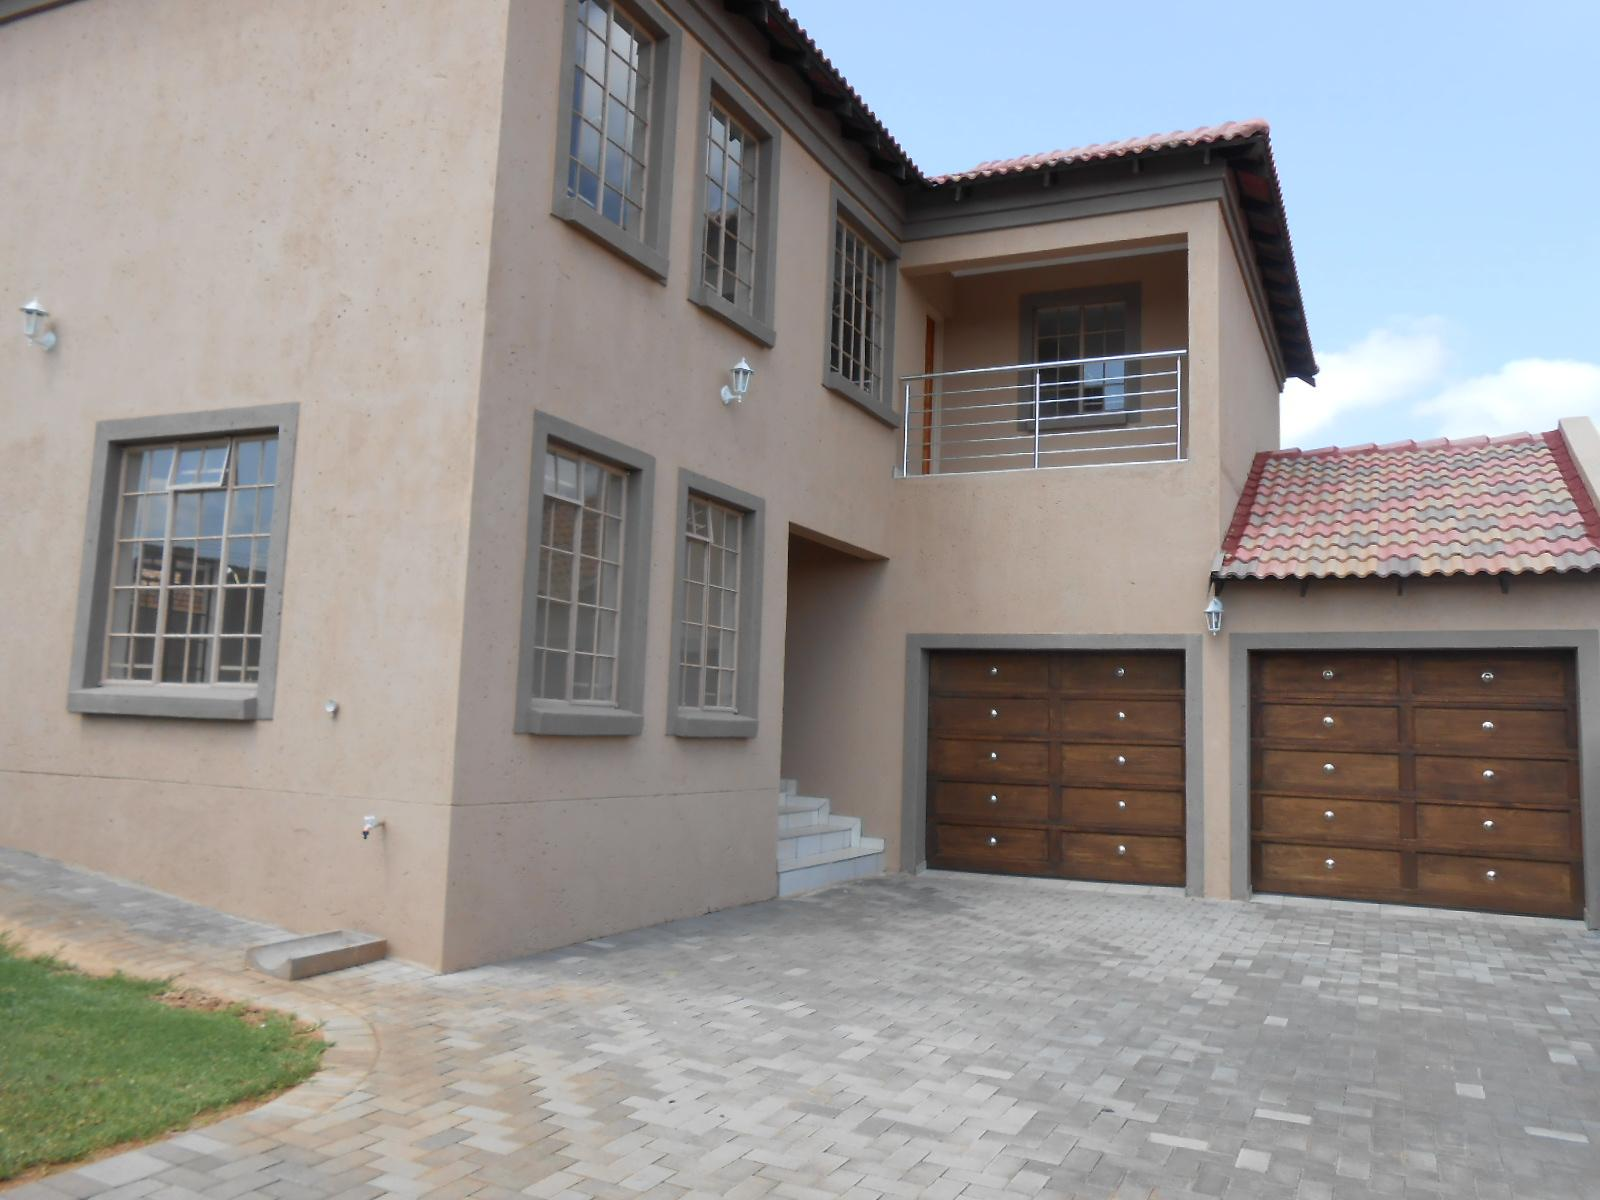 4 bedroom house for sale for sale in atteridgeville for North west house